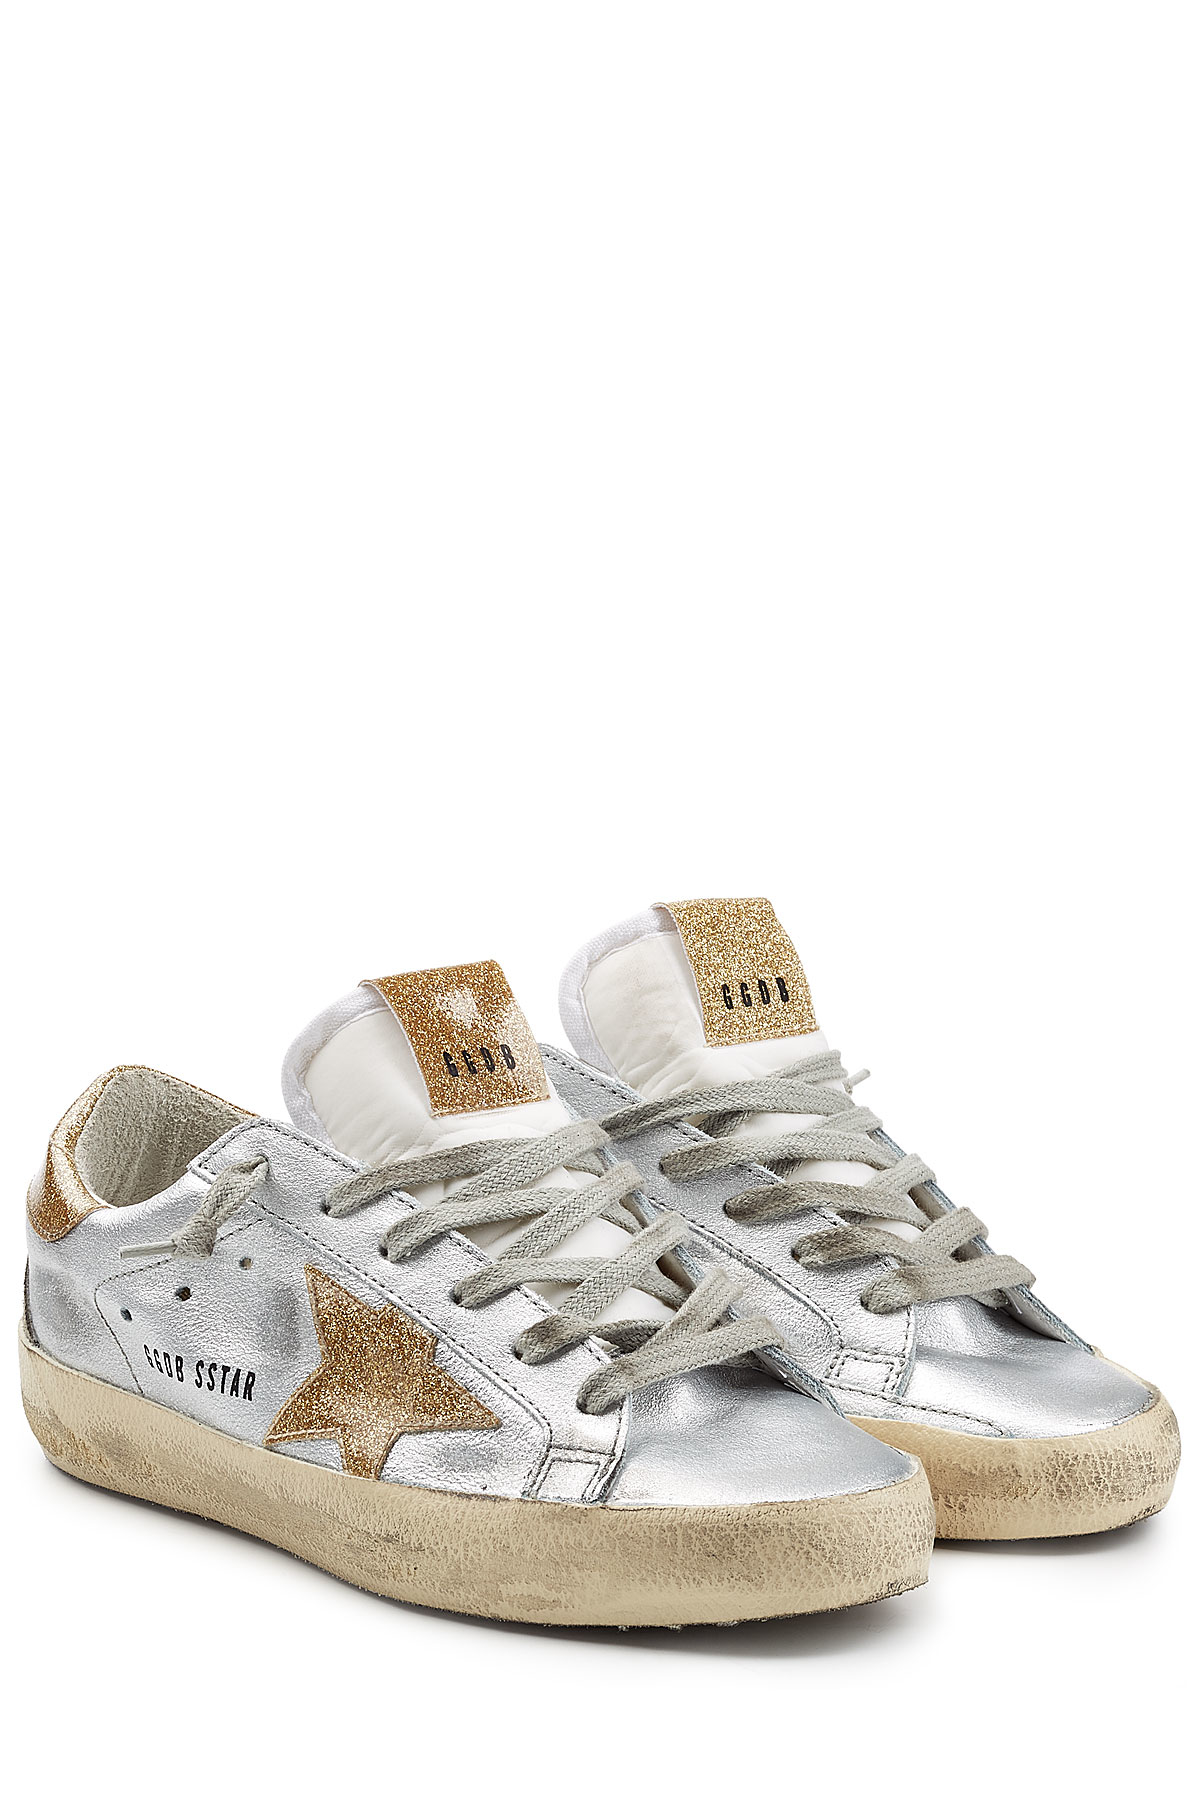 Its Worn Effect: Golden Goose of Sneaker